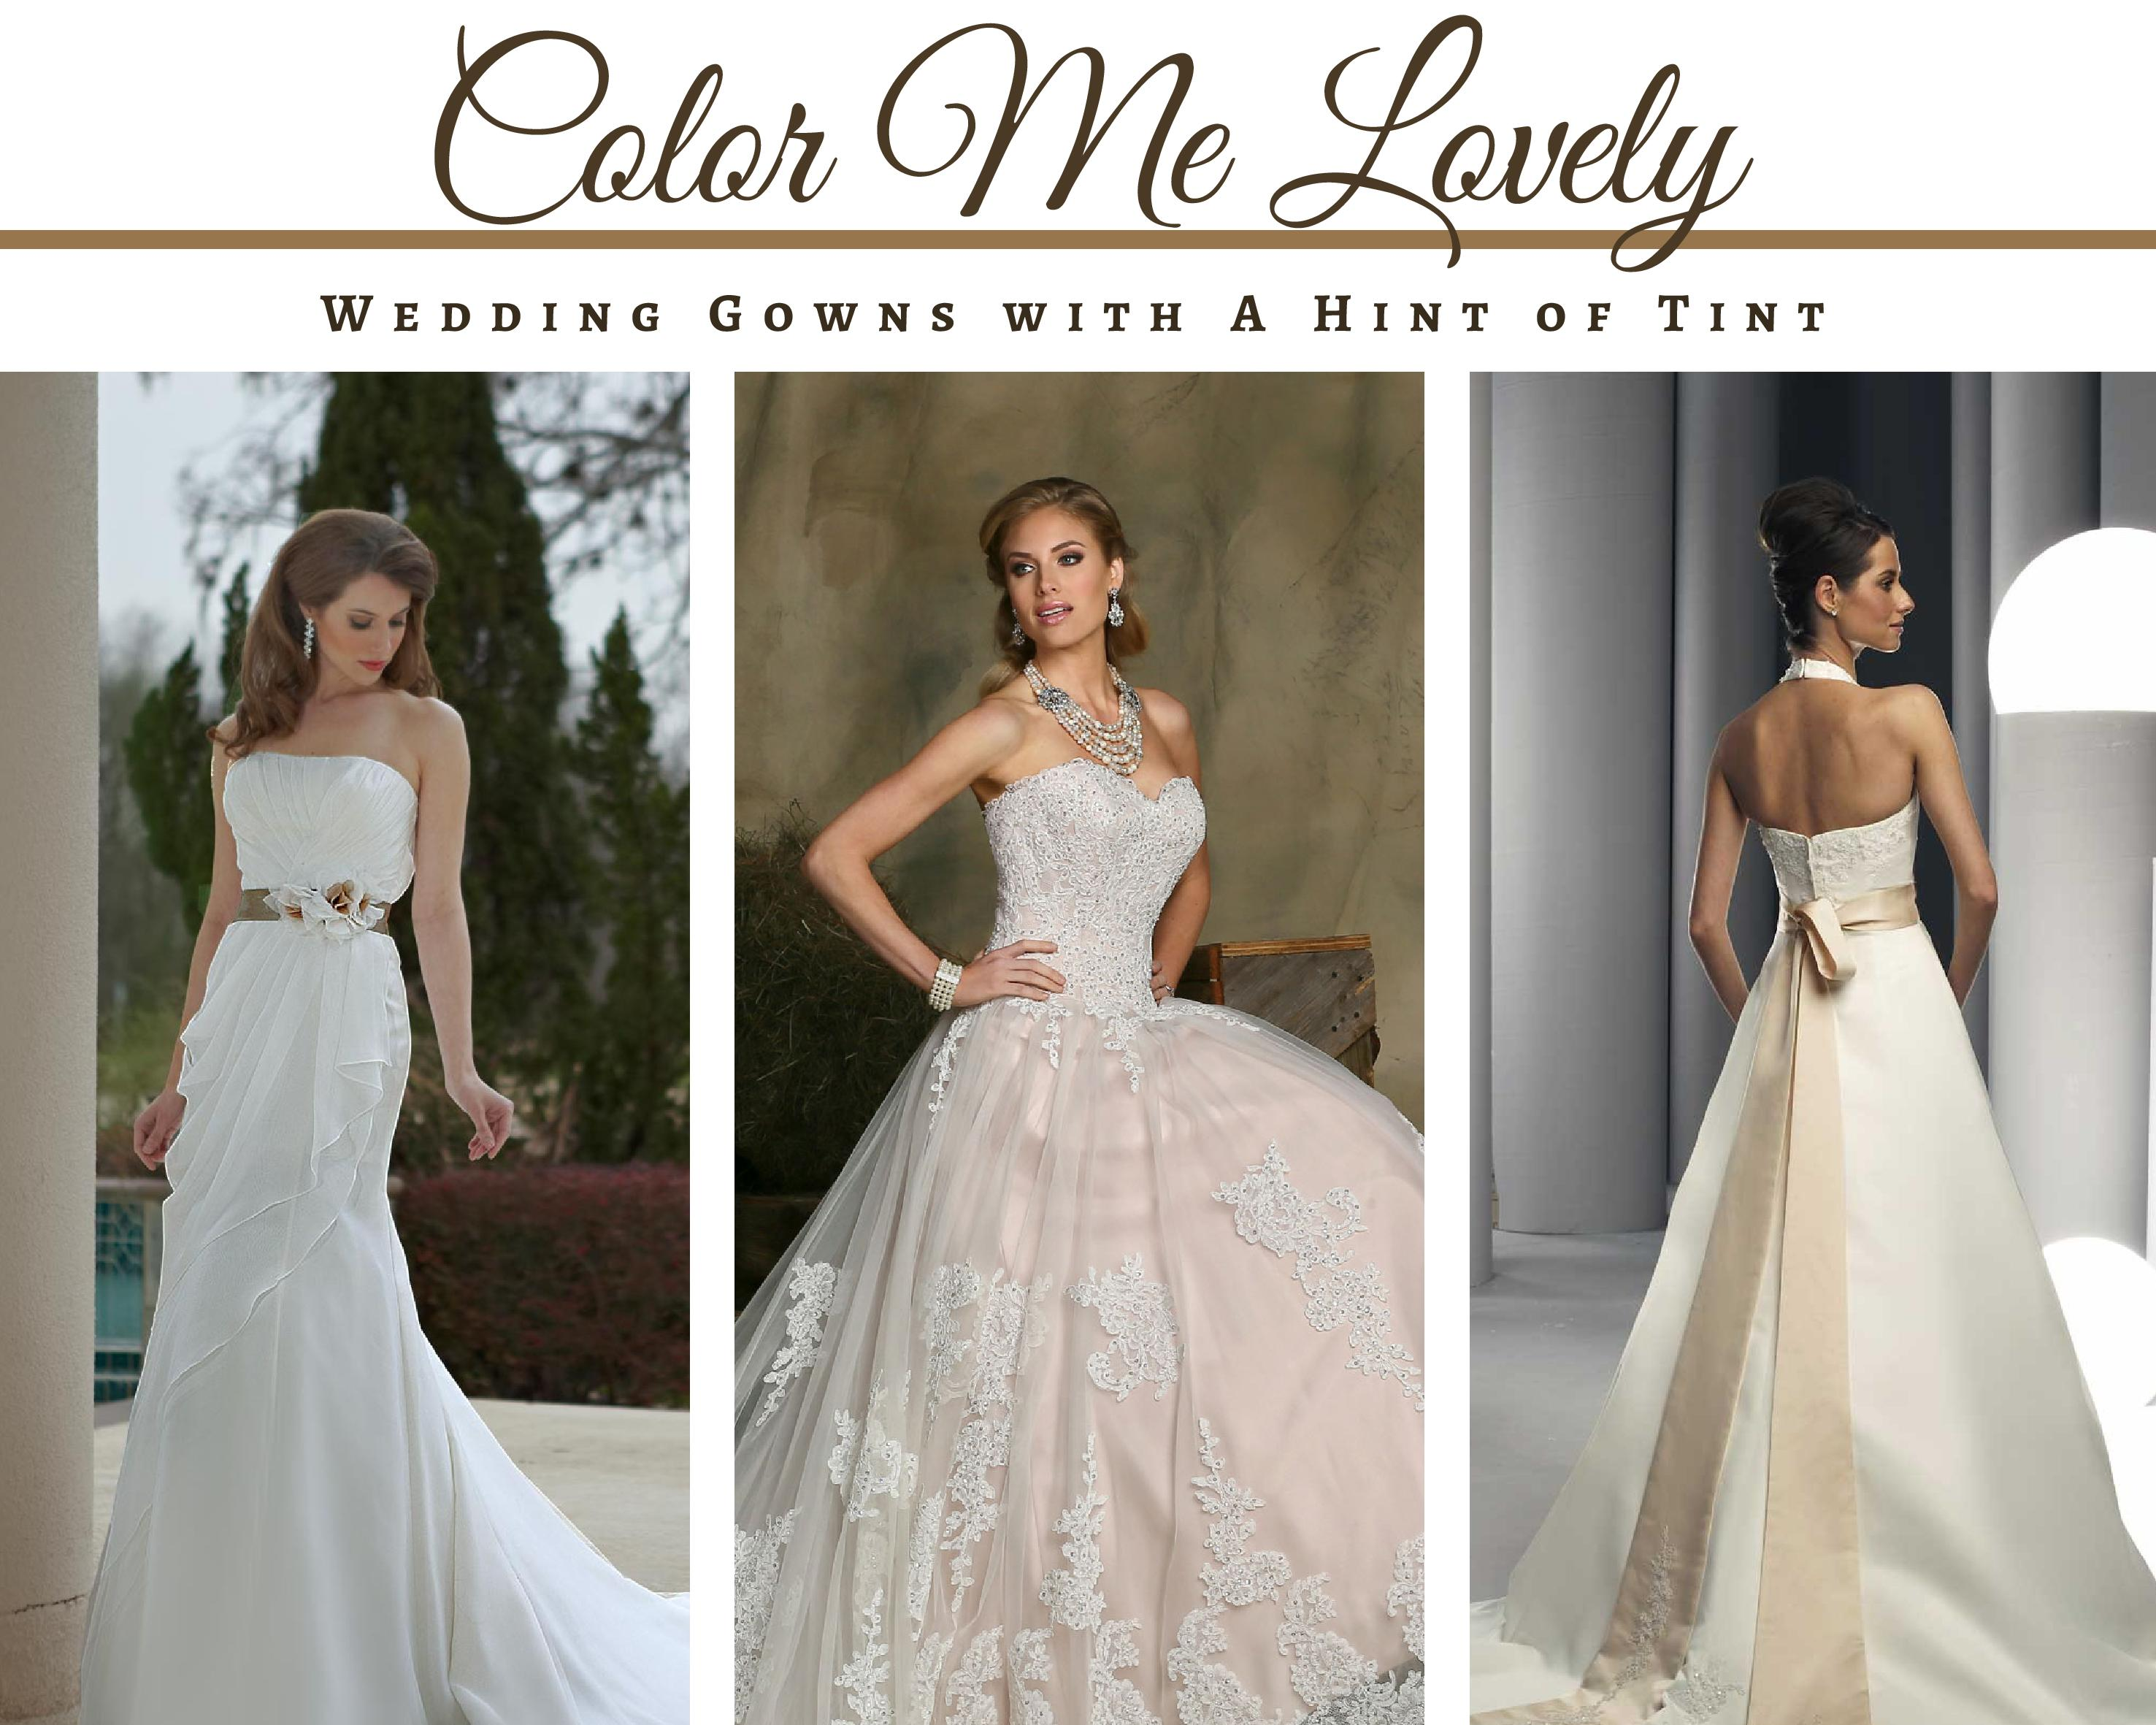 Color Me Lovely: Wedding Gowns with a Hint of Tint | DaVinci Bridal Blog